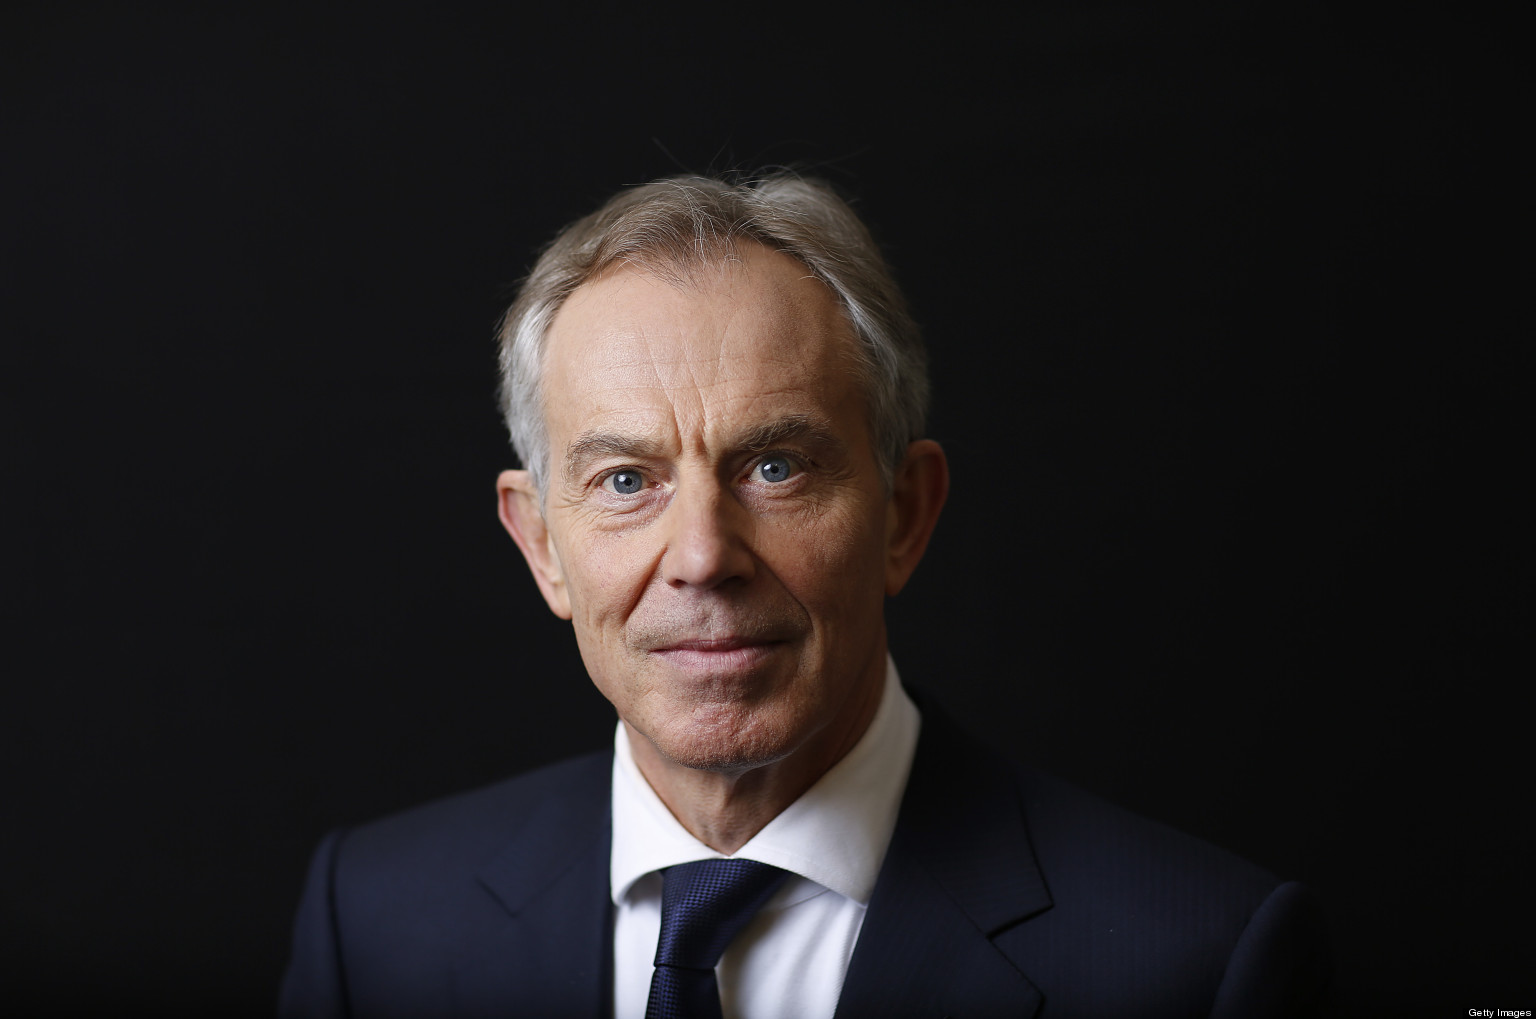 Tony Blair, former U.K. prime minister, poses for a photograph after a Bloomberg Television interview on the opening day of the World Economic Forum (WEF) in Davos, Switzerland, on Wednesday, Jan. 23, 2013. World leaders, Influential executives, bankers and policy makers attend the 43rd annual meeting of the World Economic Forum in Davos, the five day event runs from Jan. 23-27. Photographer: Simon Dawson/Bloomberg via Getty Images